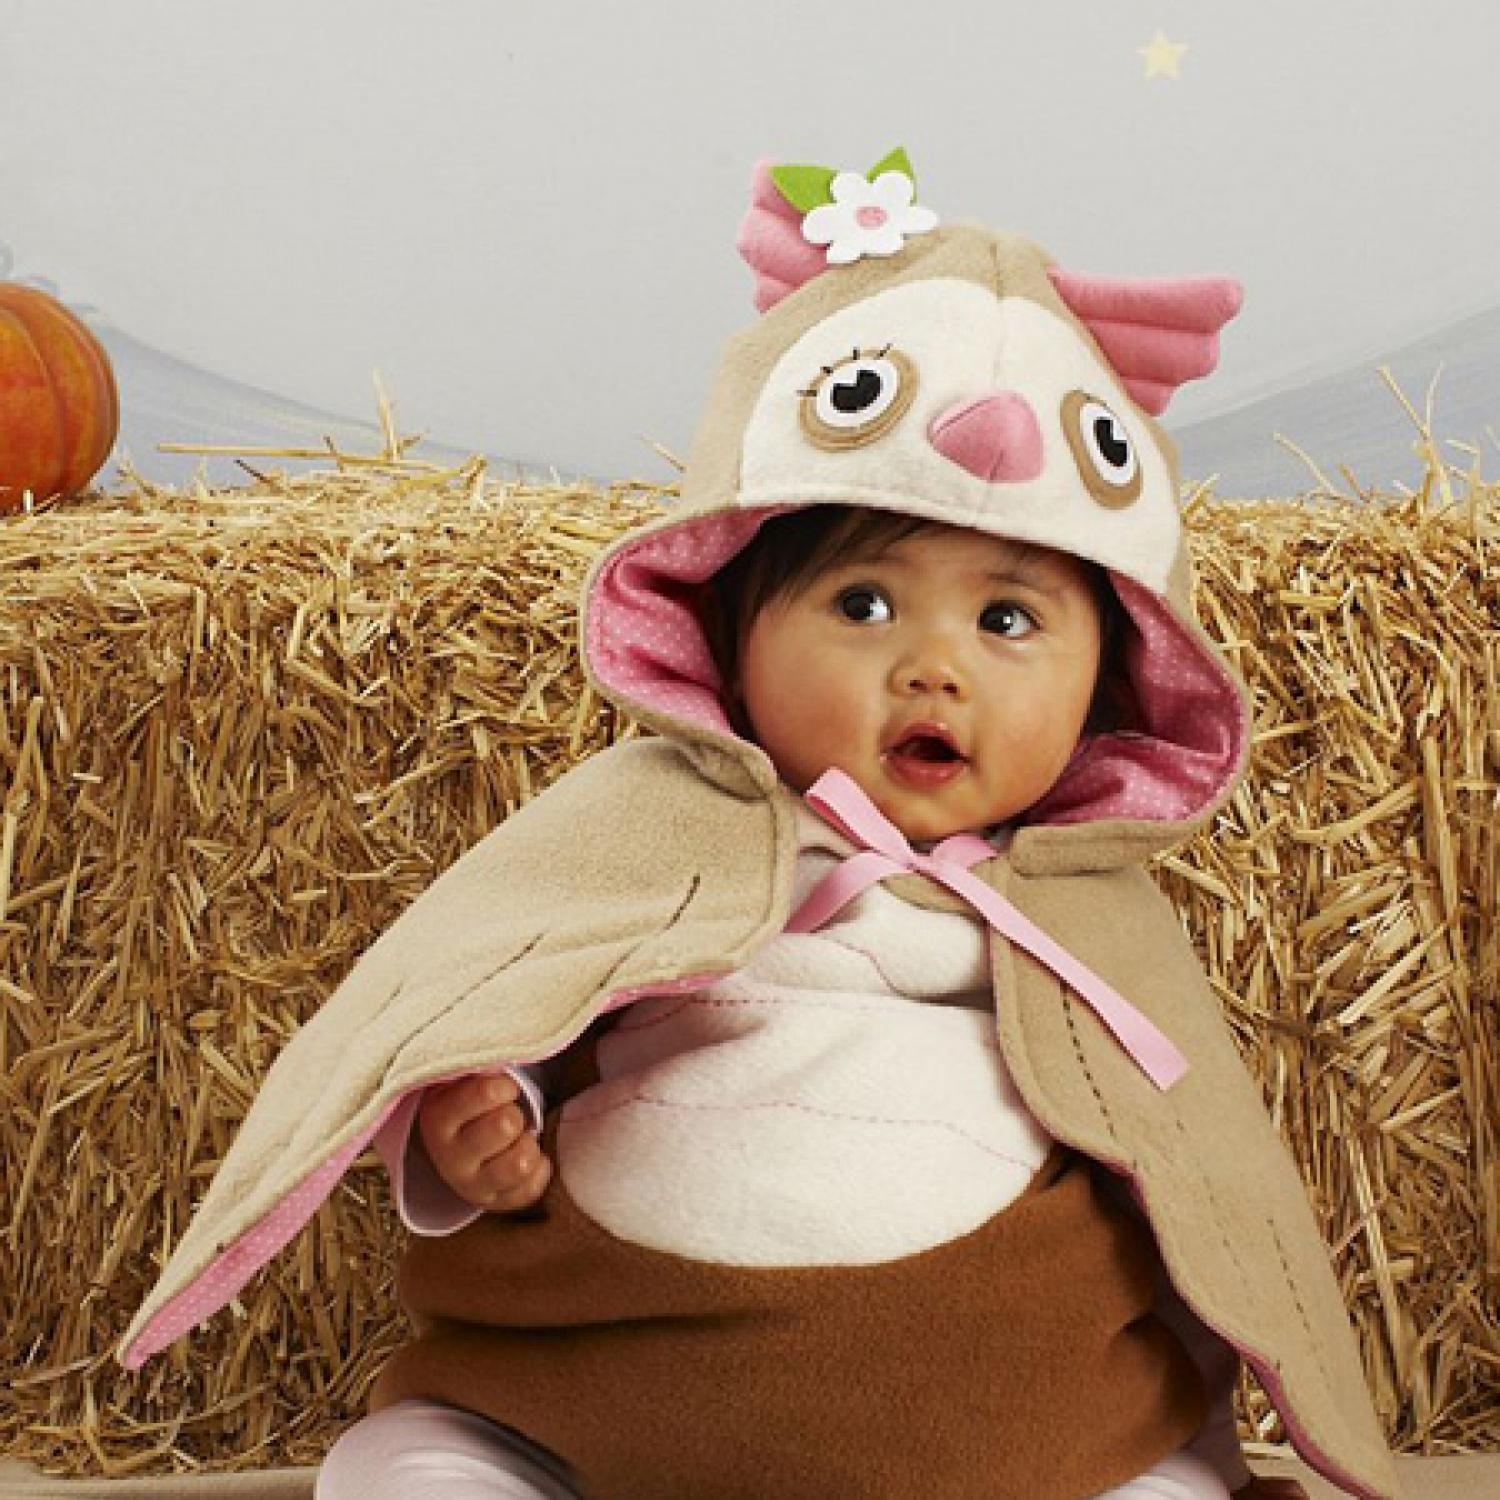 sc 1 st  Parenting & Wild Baby Halloween Costumes | Parenting